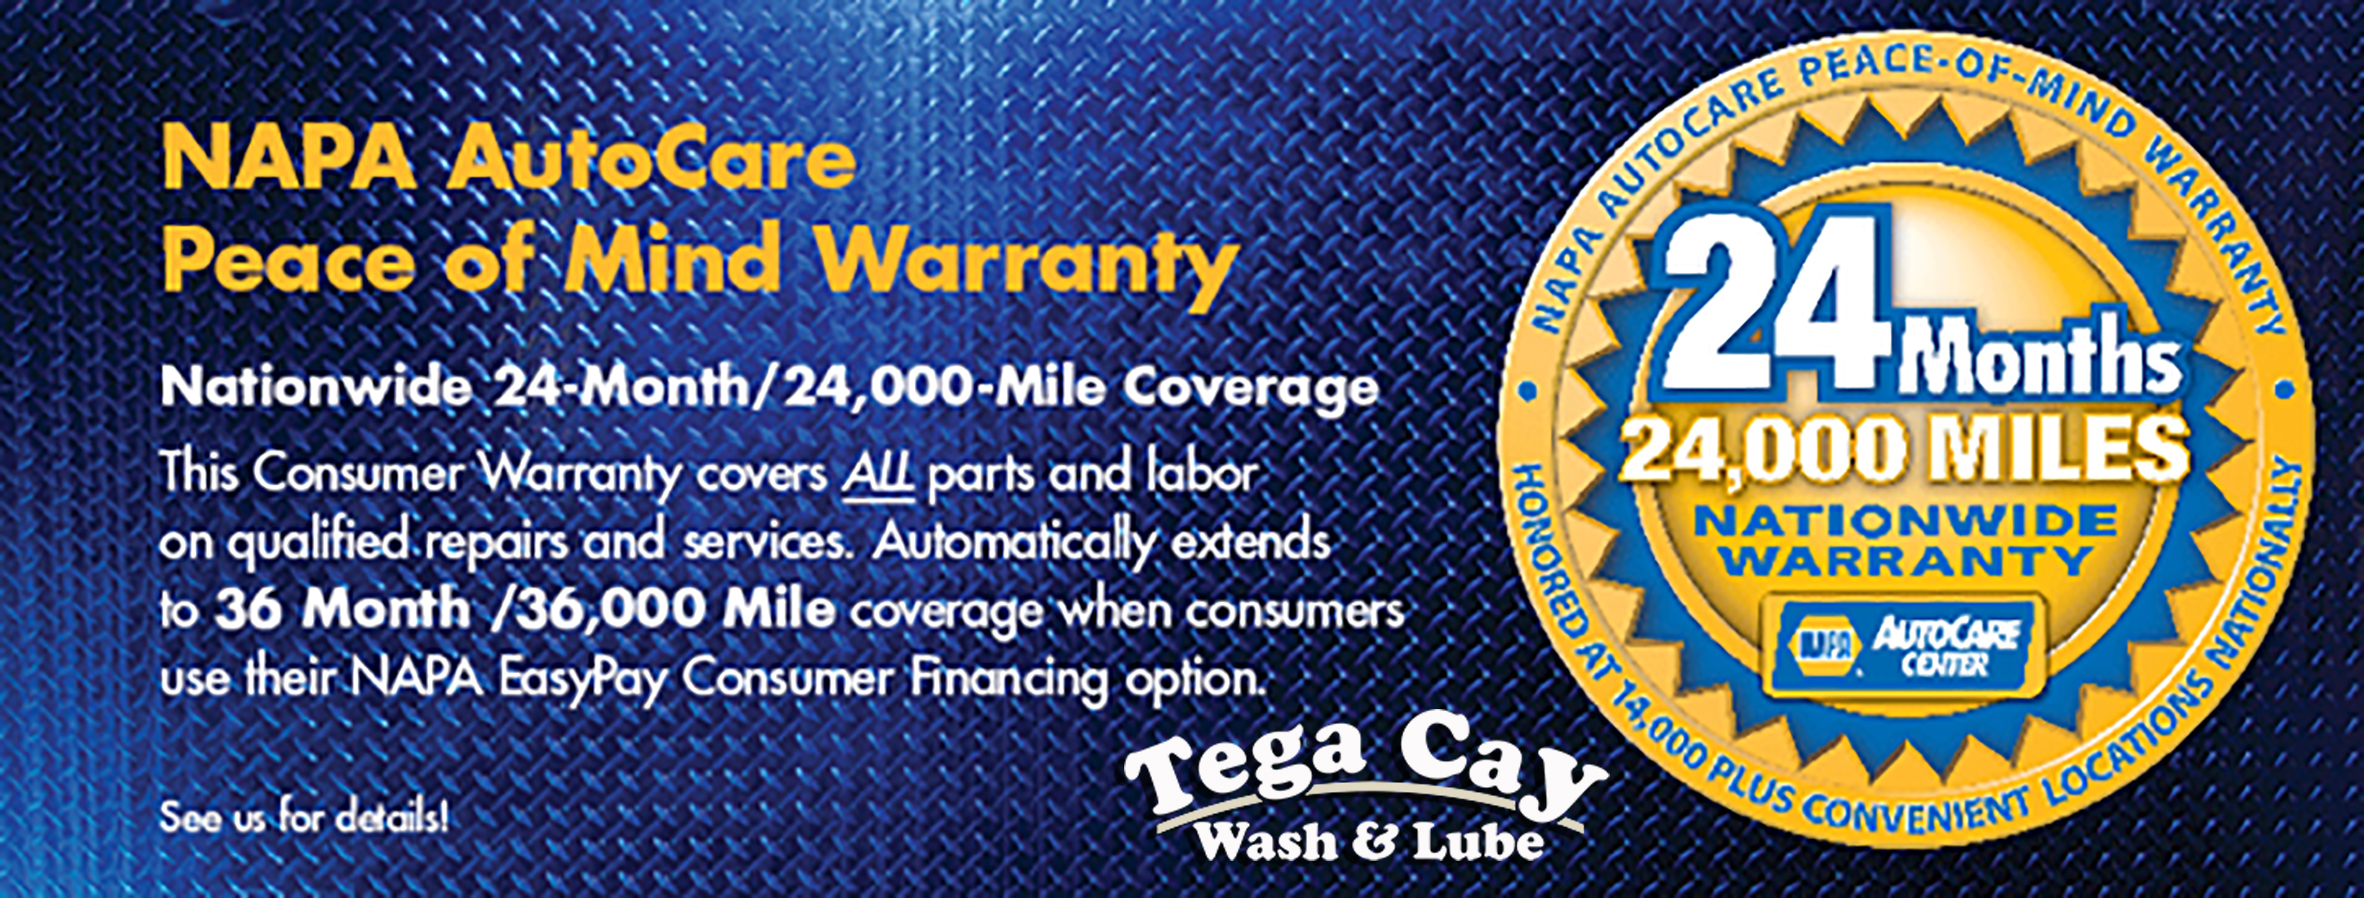 24-month-warranty-napa-auto-parts-autocare-center-tega-cay-wash-lube-near-fort-mill-lake-wylie-south-carolina-napa-autopart